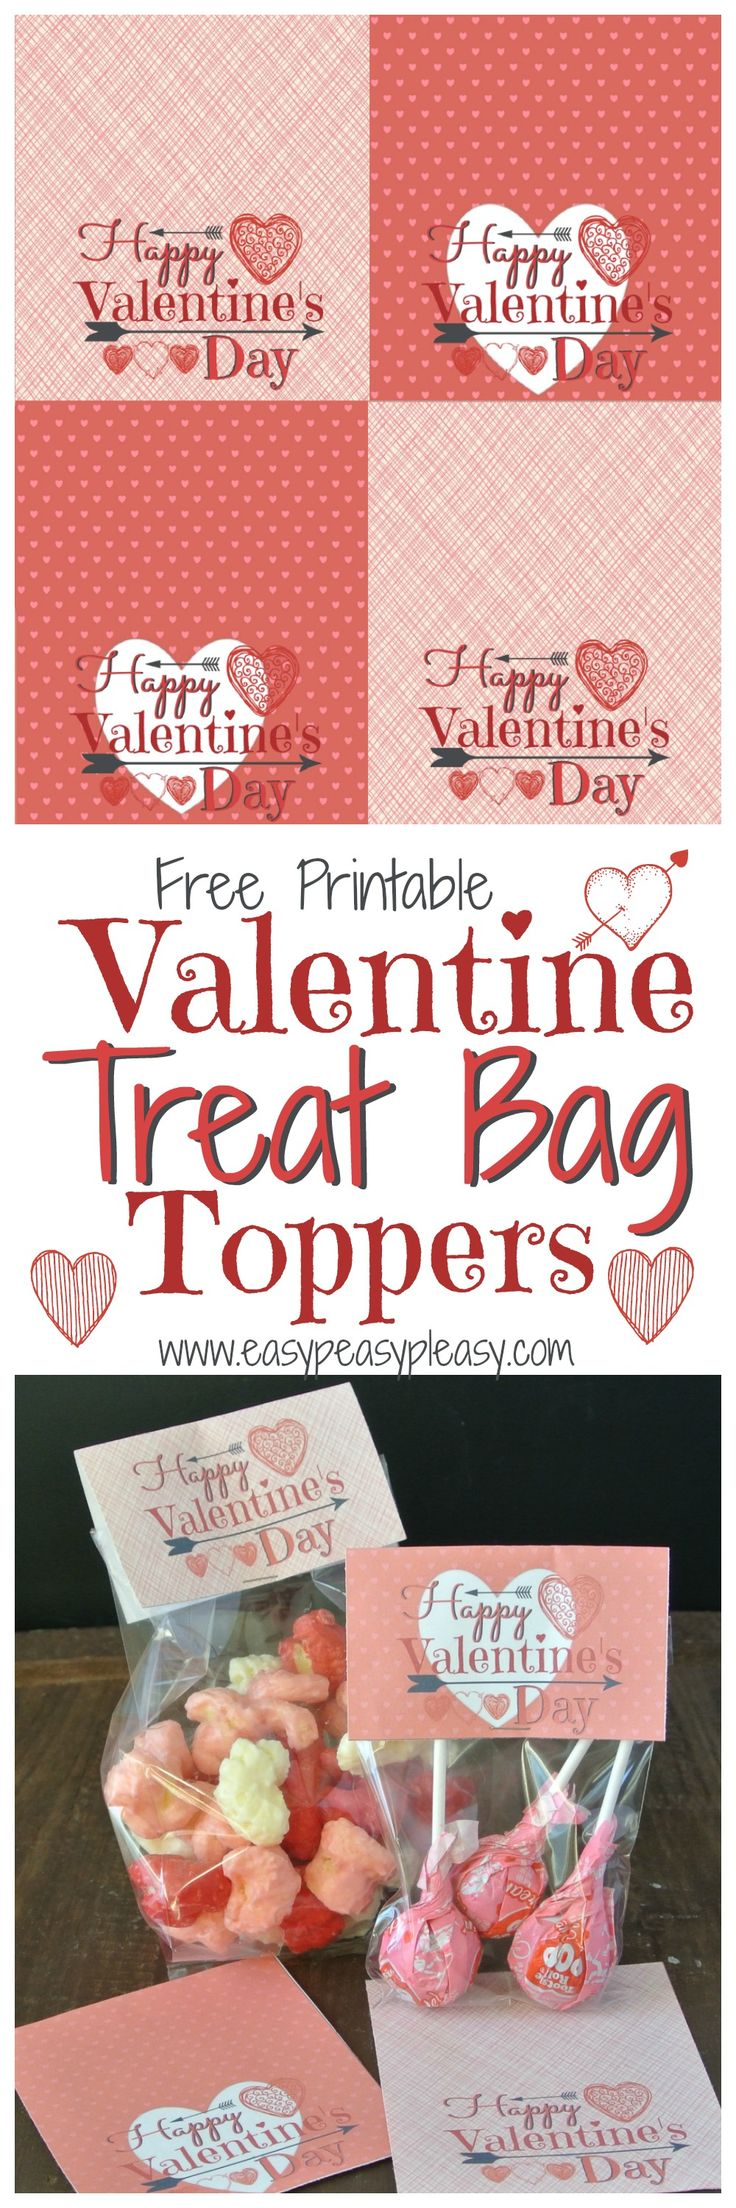 Free Printable Valentine Treat Bag Toppers! Perfect for classrooms parties!